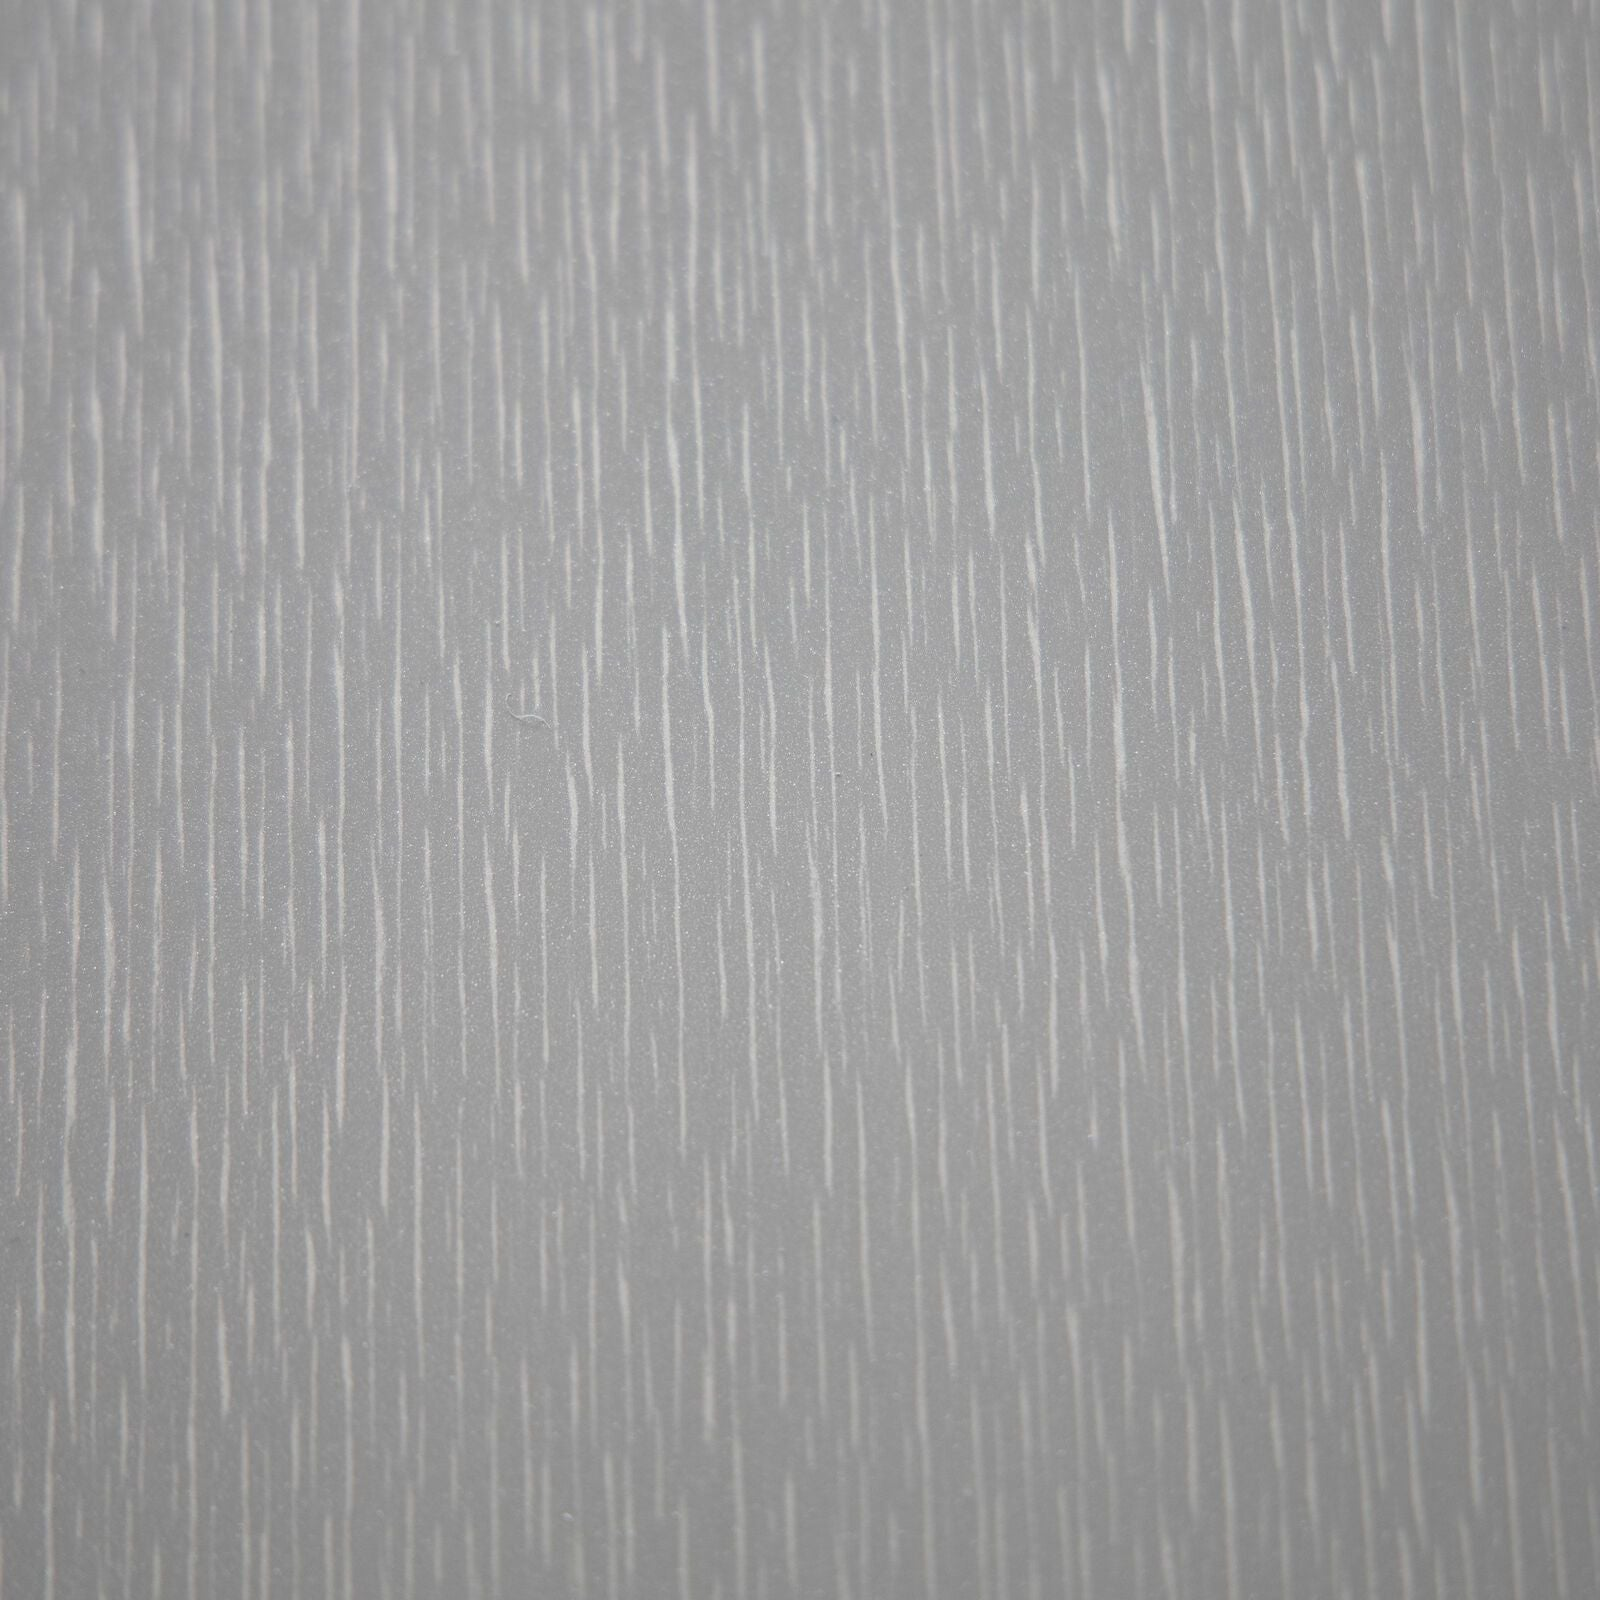 Silver Silk Bathroom 5mm Wall Panels Shower Cladding 2.6m x 0.25m - Claddtech